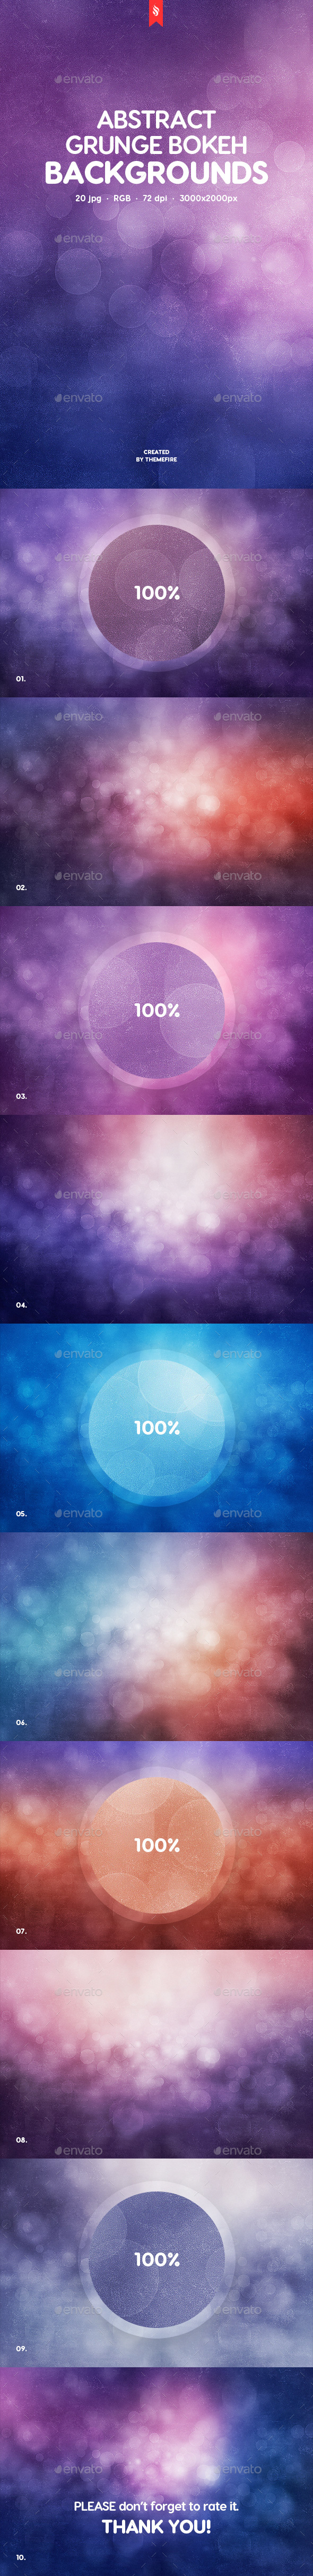 10 Grunge Bokeh Backgrounds - Backgrounds Graphics